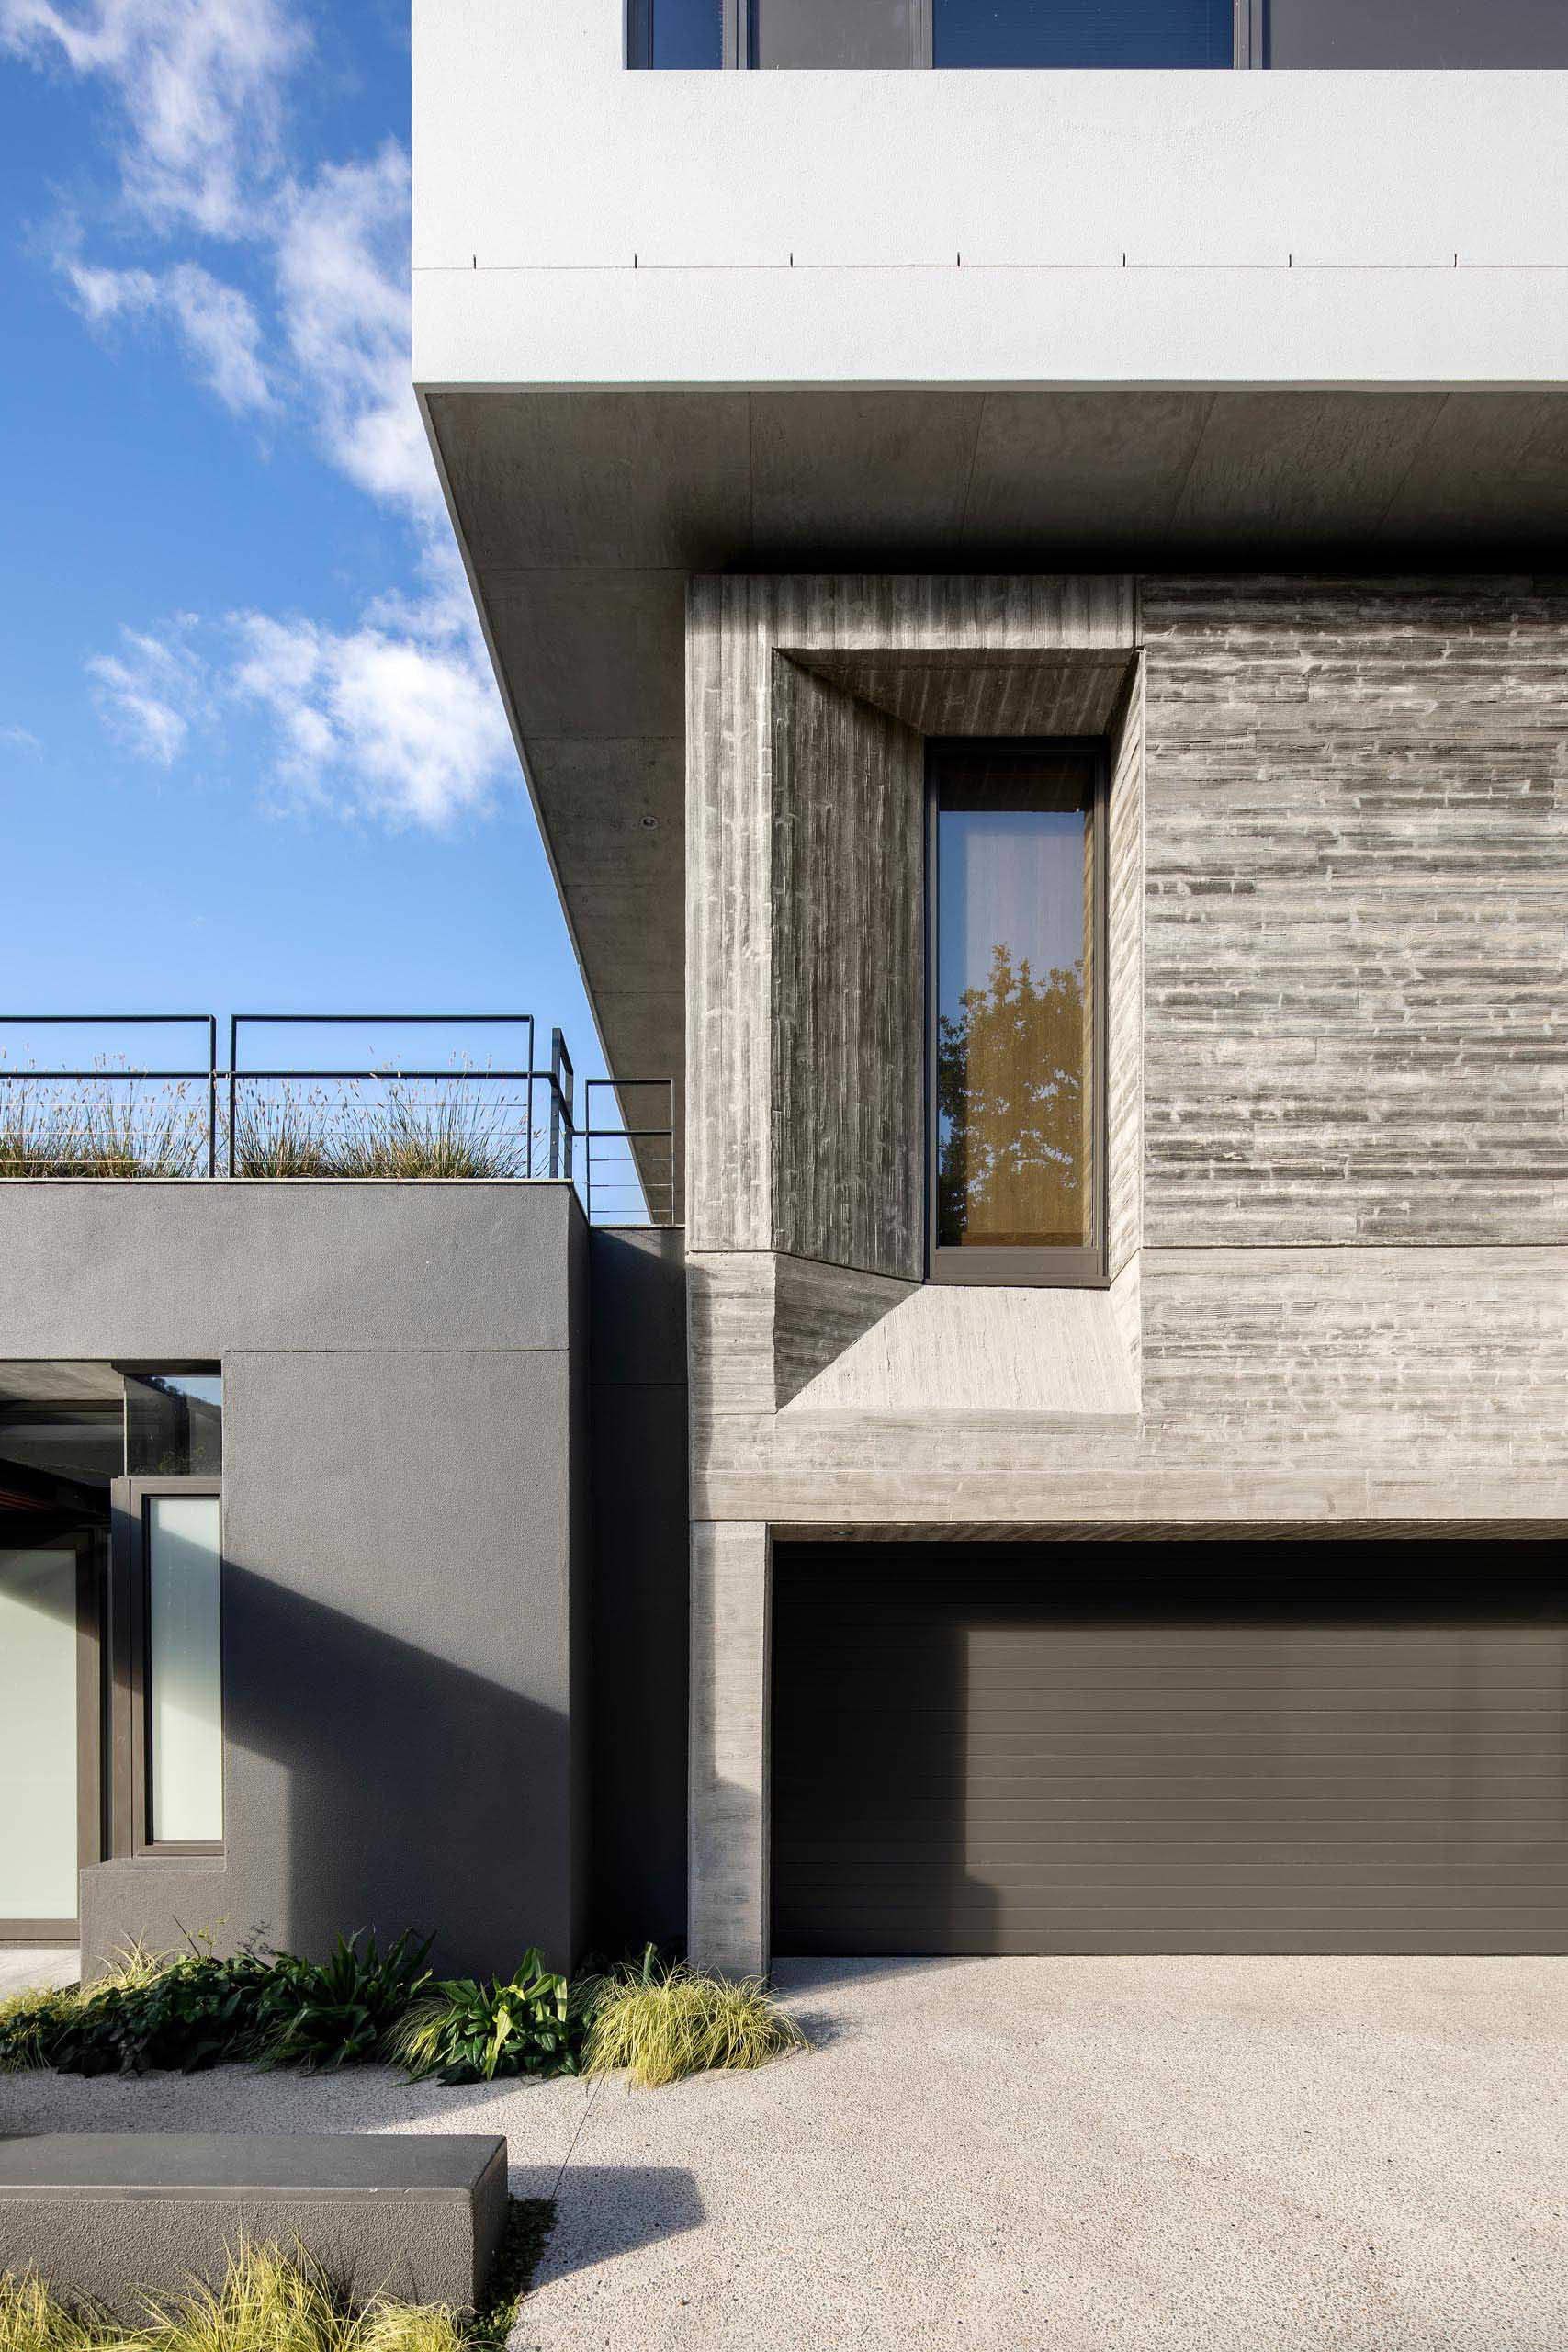 A modern house with a concrete and black exterior.